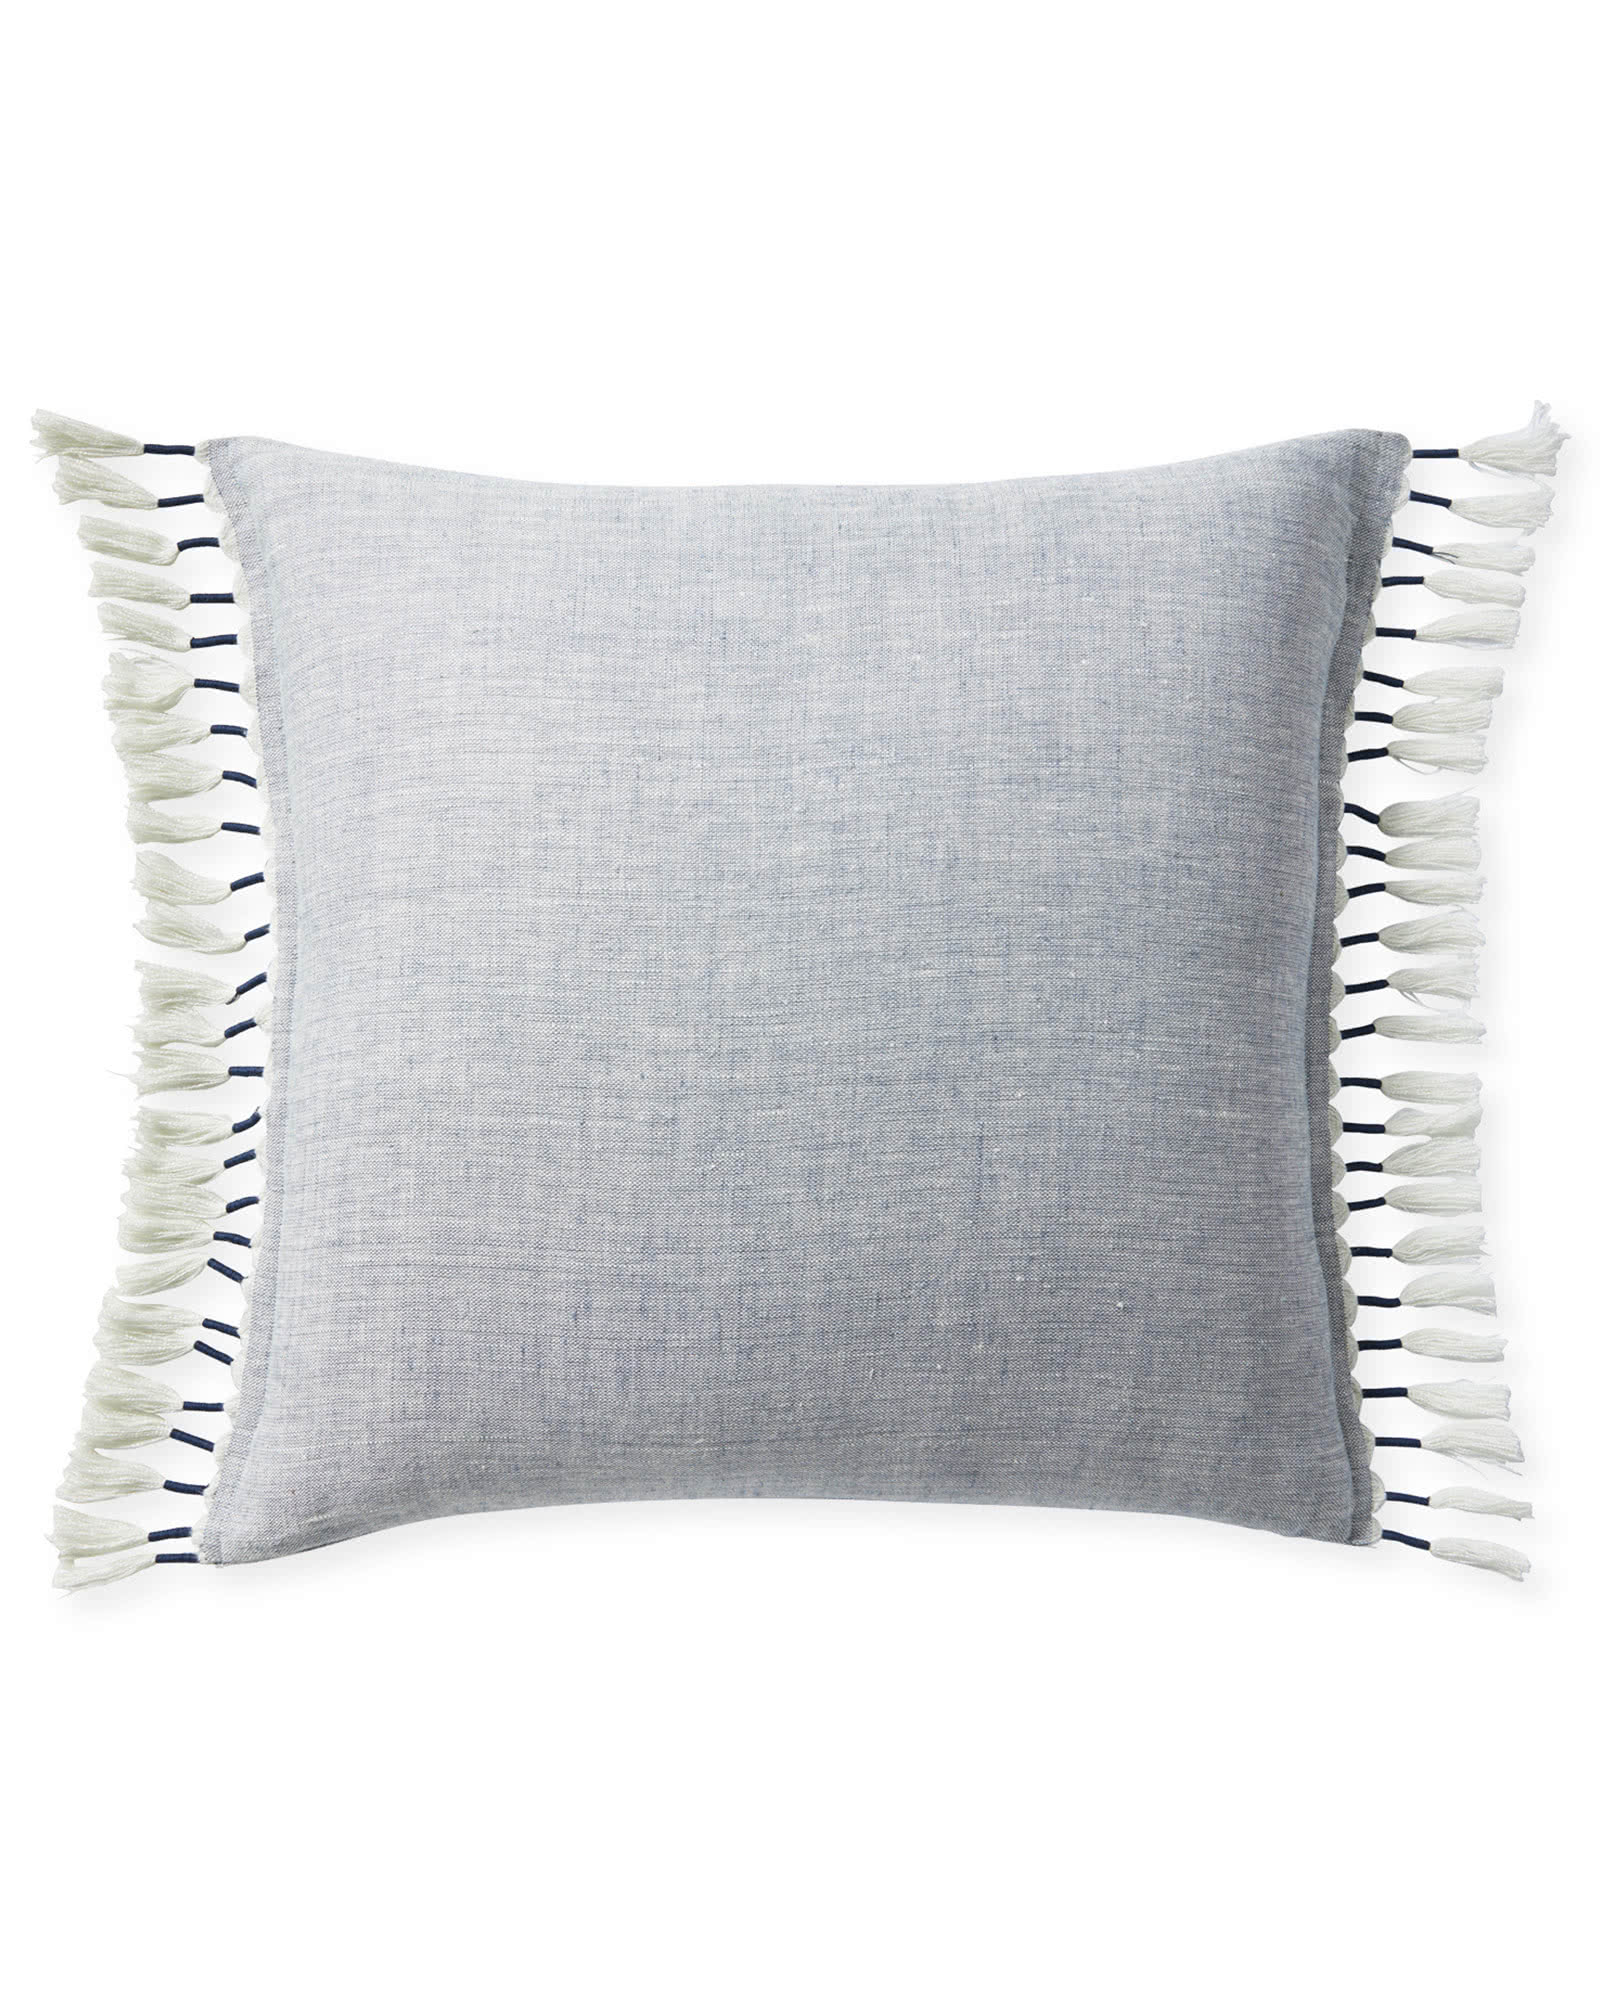 Topanga Pillow Cover,